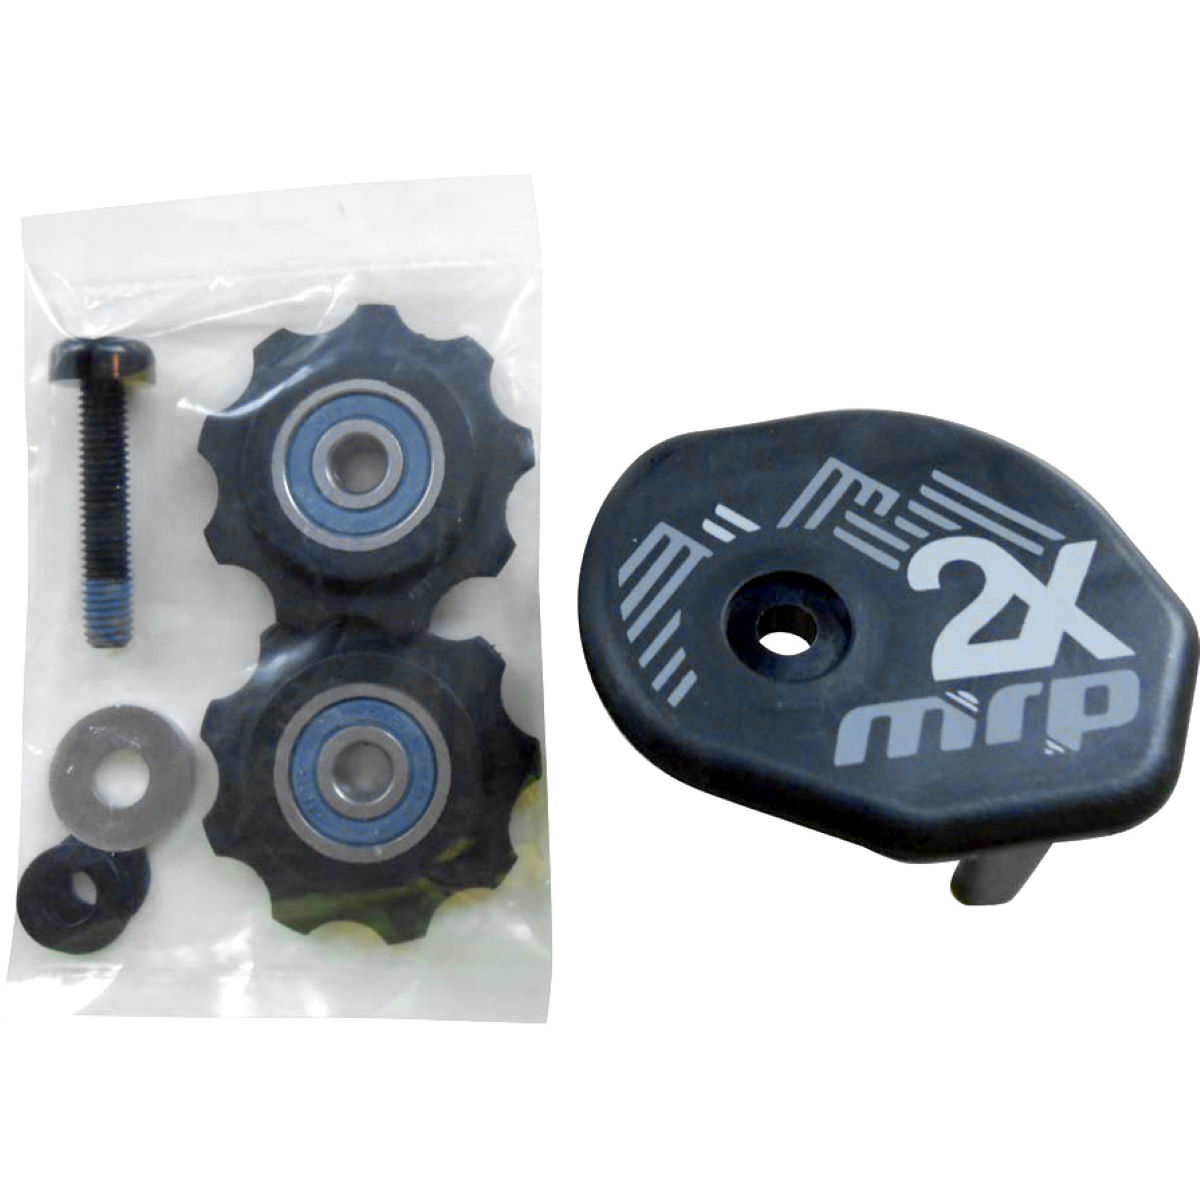 MRP 2x Lower Guide Kit - Protectores de platos